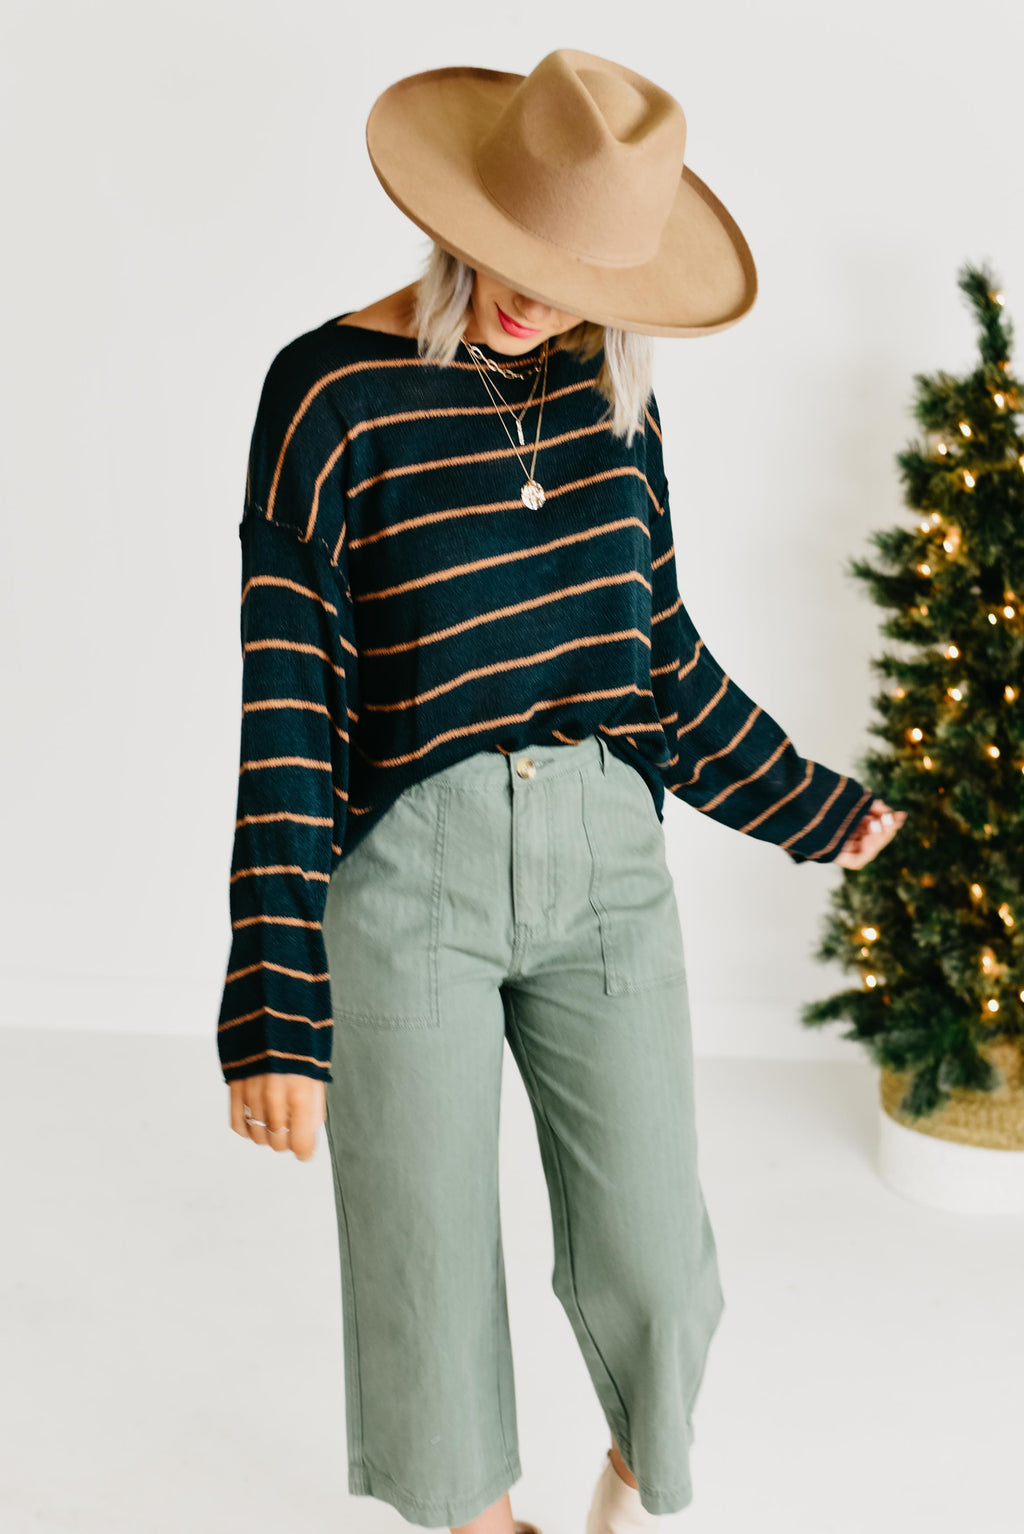 The Rosalie Striped Sweater - Hunter Green